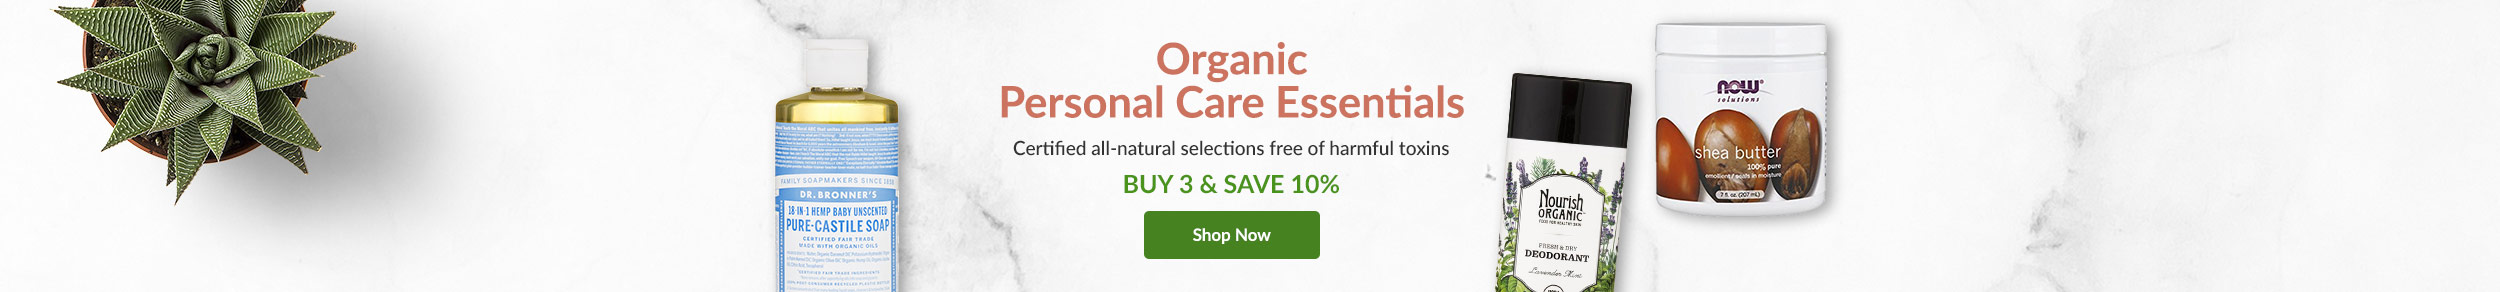 https://i3.pureformulas.net/images/static/Organic-Personal-Care_slide3_062718.jpg